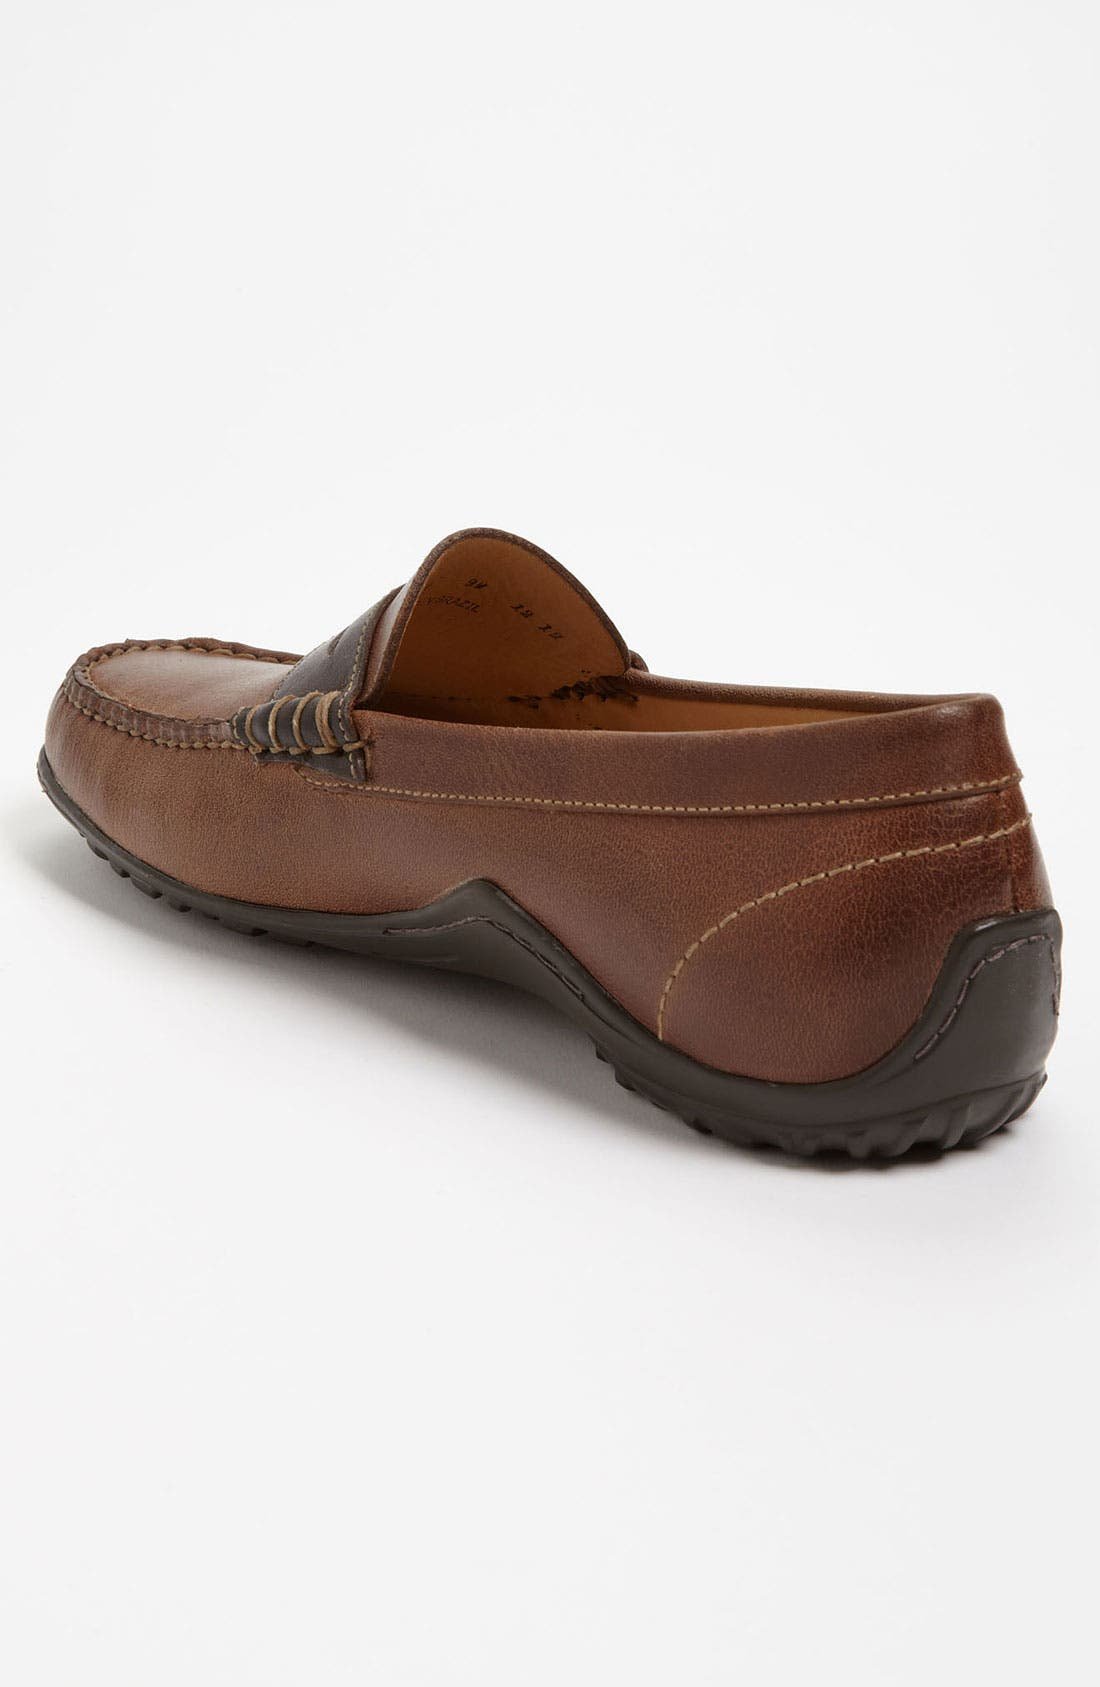 Alternate Image 2  - Martin Dingman 'Bill' Penny Loafer